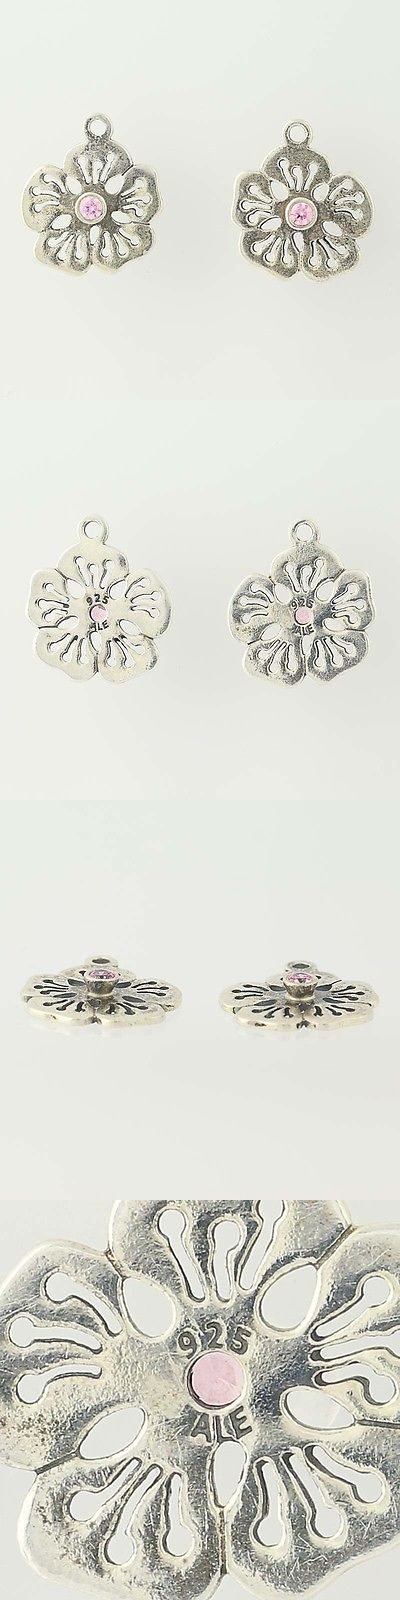 Other fine earrings 10984 new pandora flower earrings charms other fine earrings 10984 new pandora flower earrings charms 290623pcz pink cz hibiscus sterling silver mightylinksfo